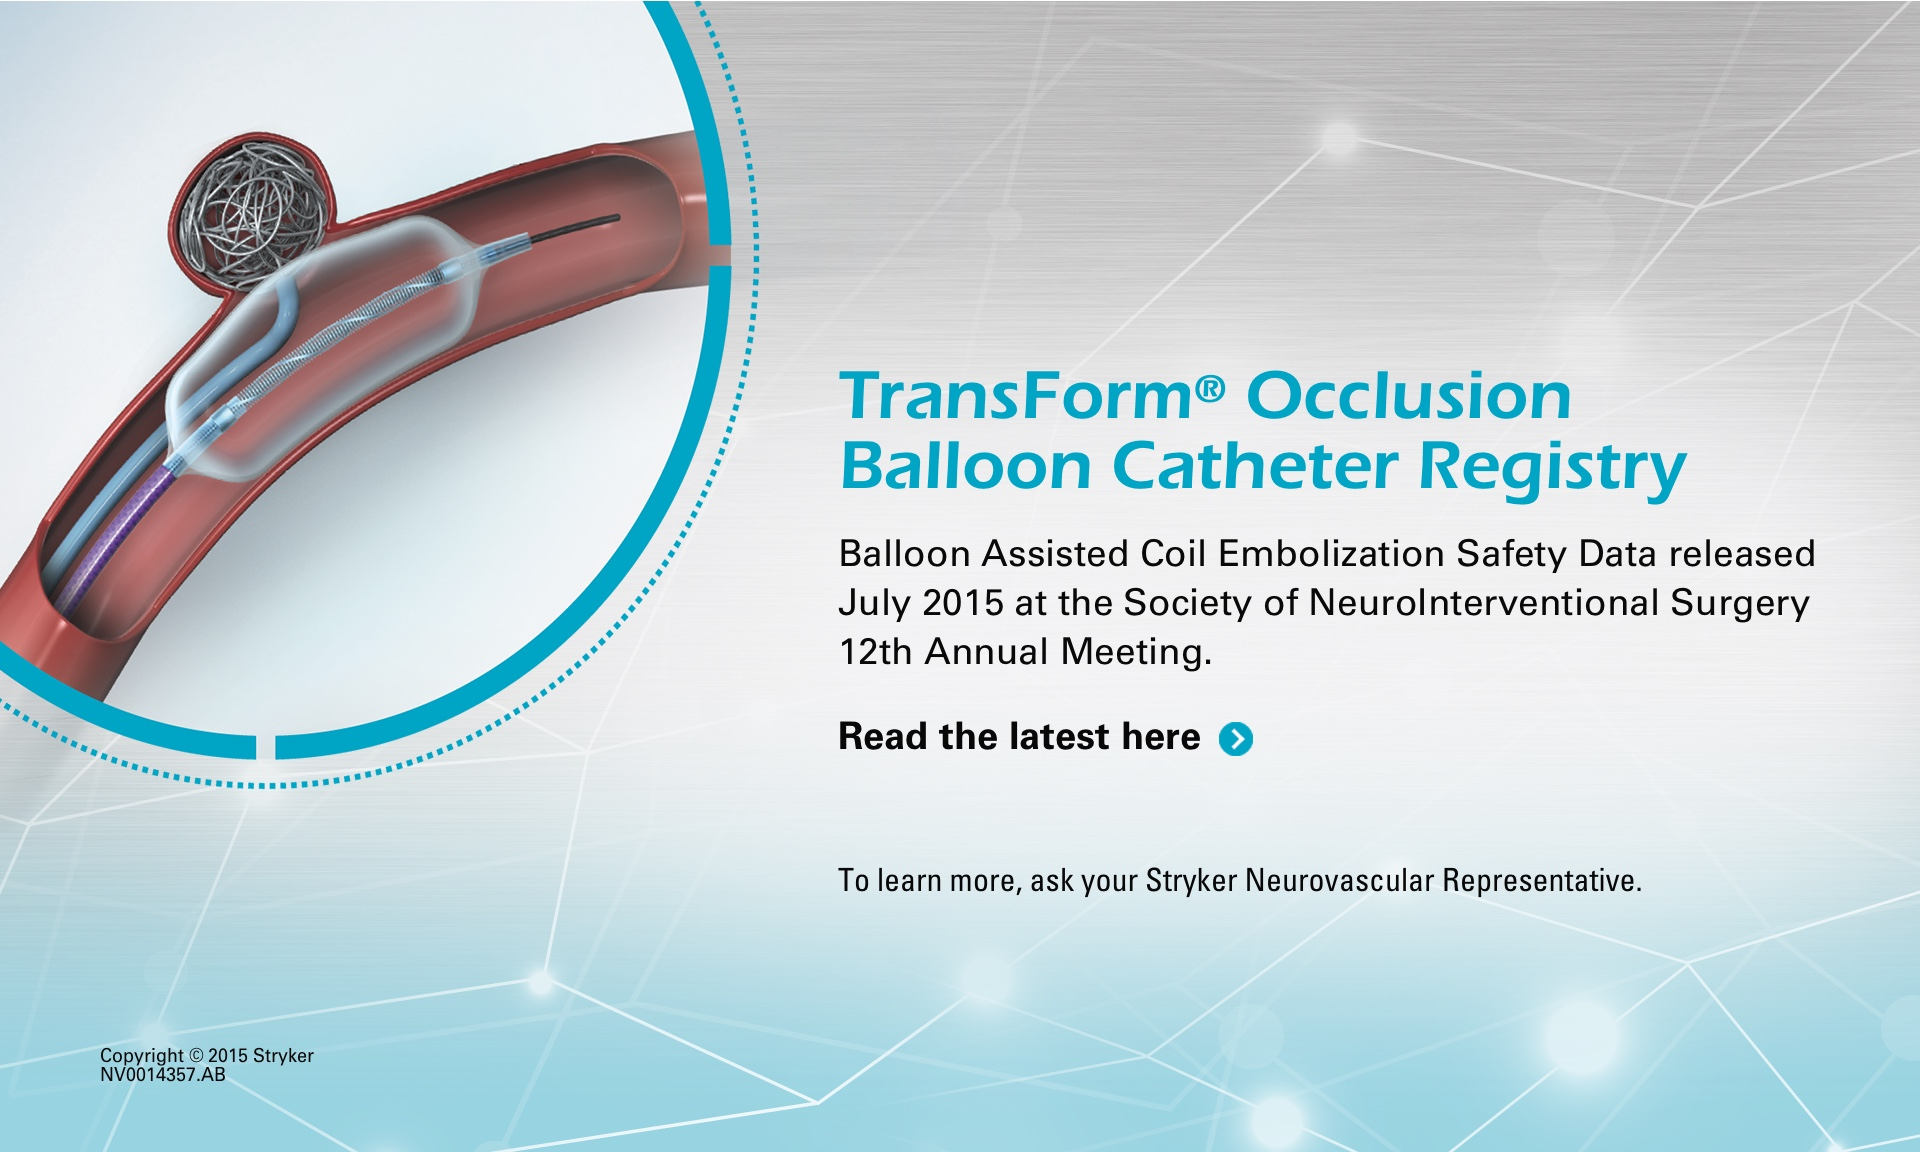 Balloon Assisted Coil Embolization Safety Data released July 2015 | Click for More